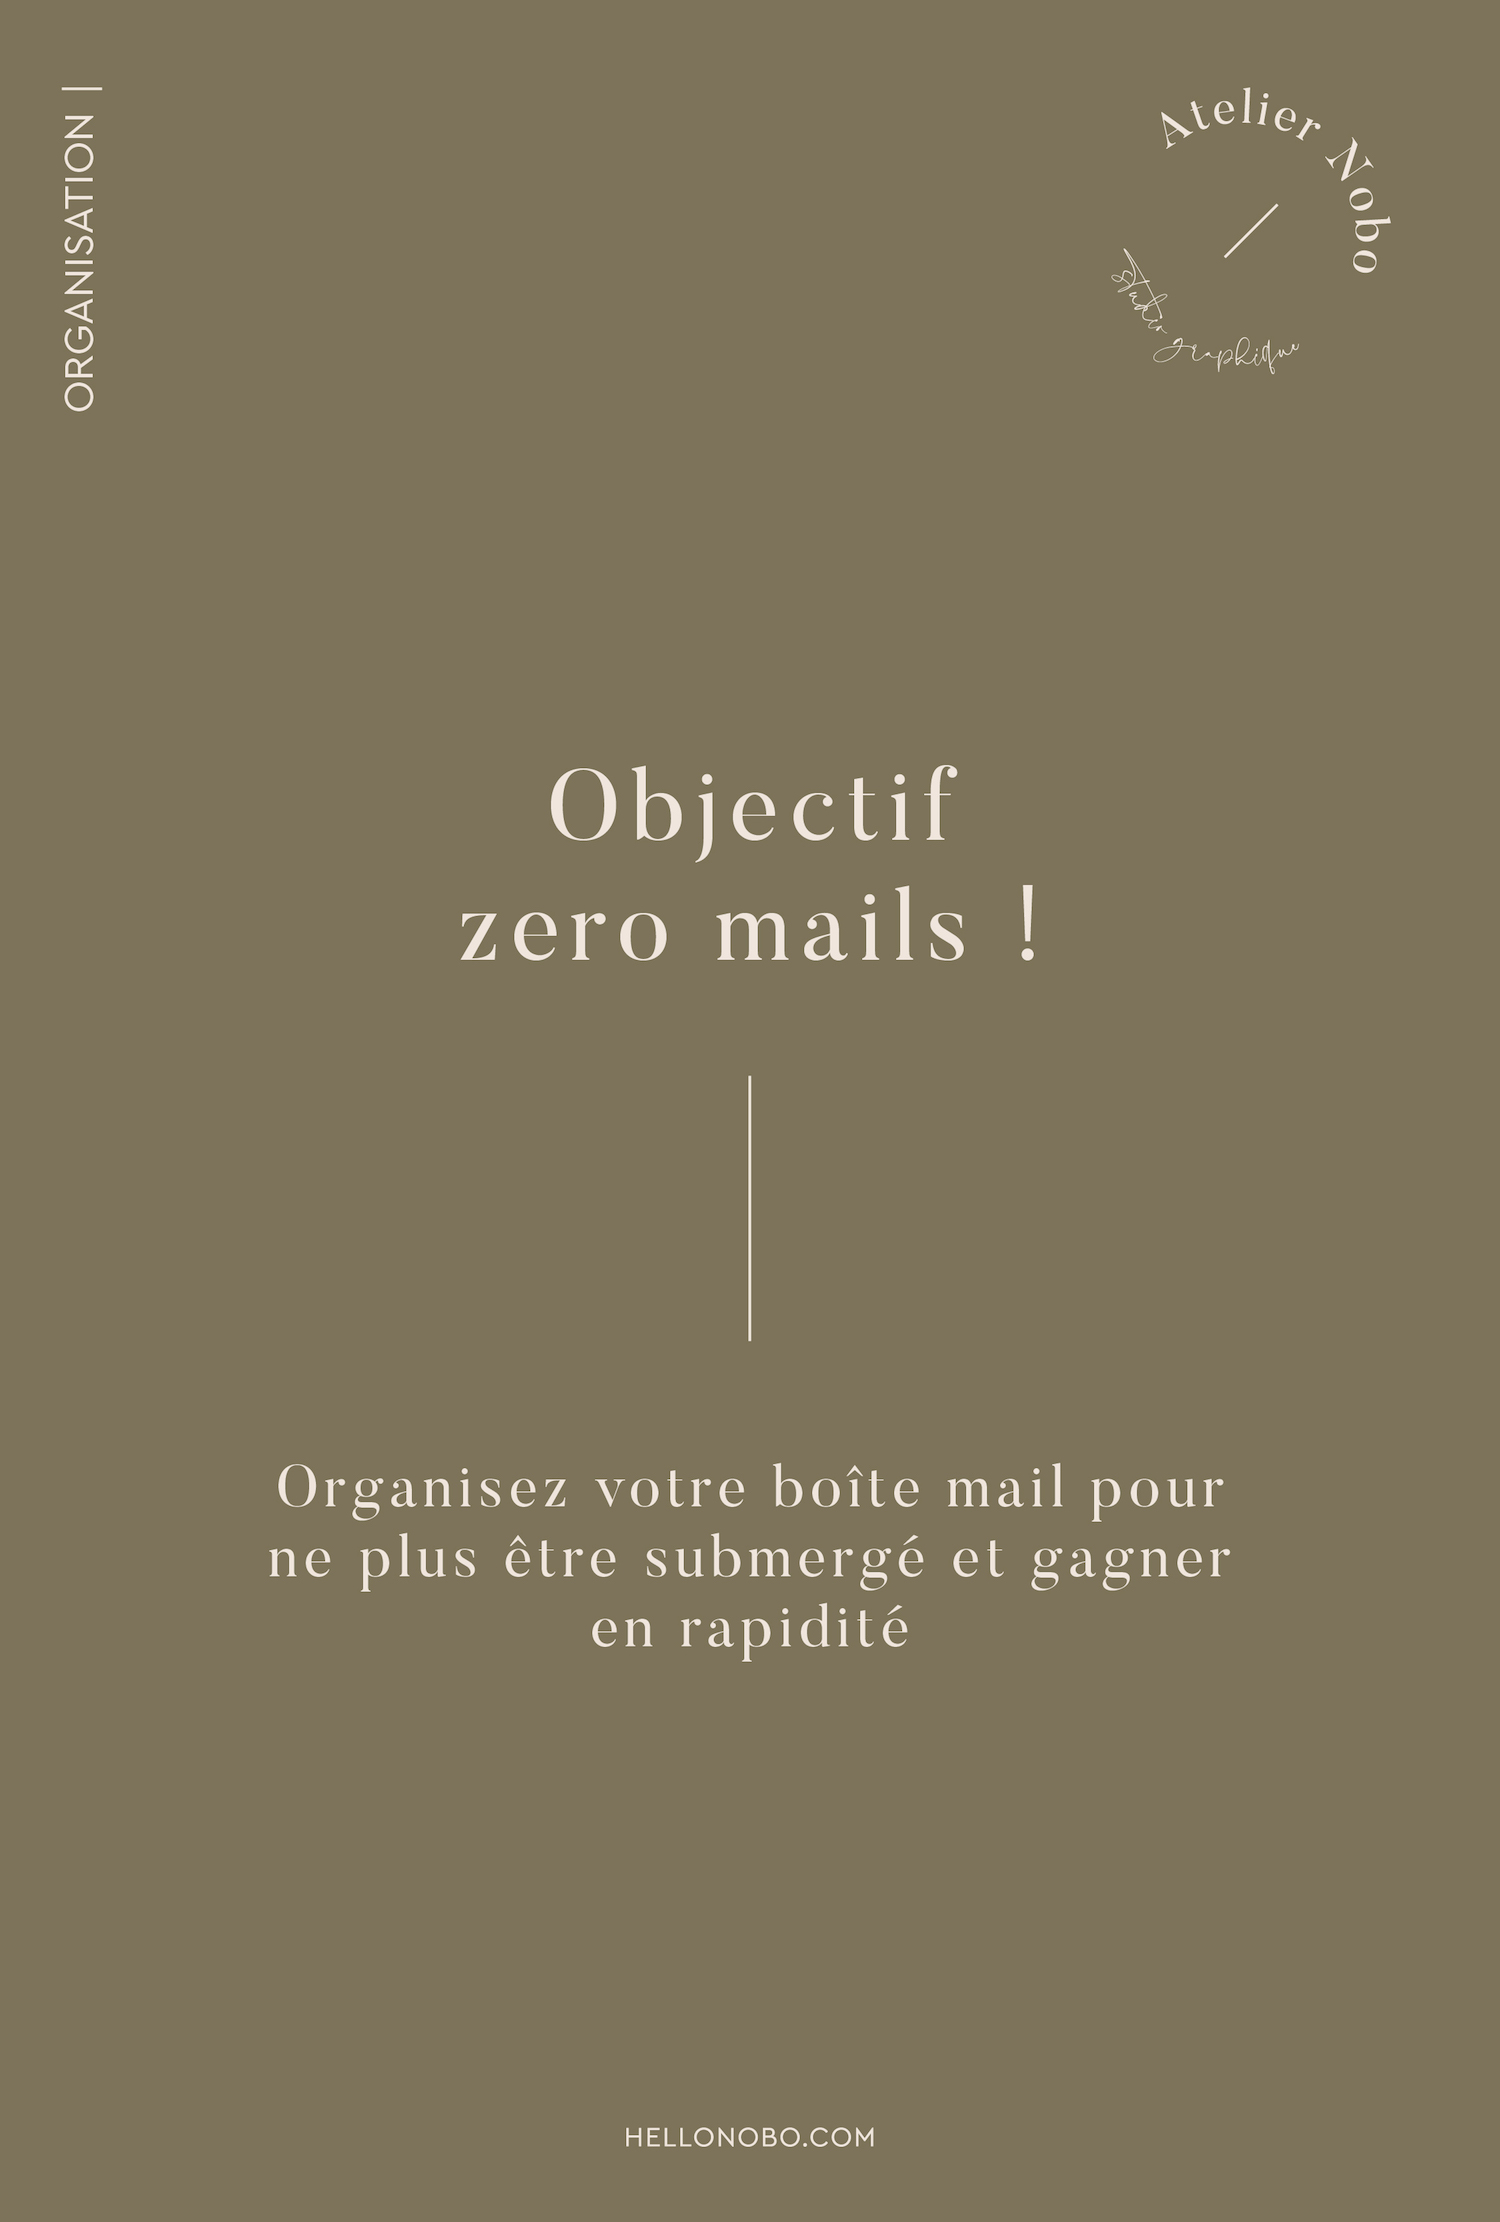 objectif zero mail-01.png